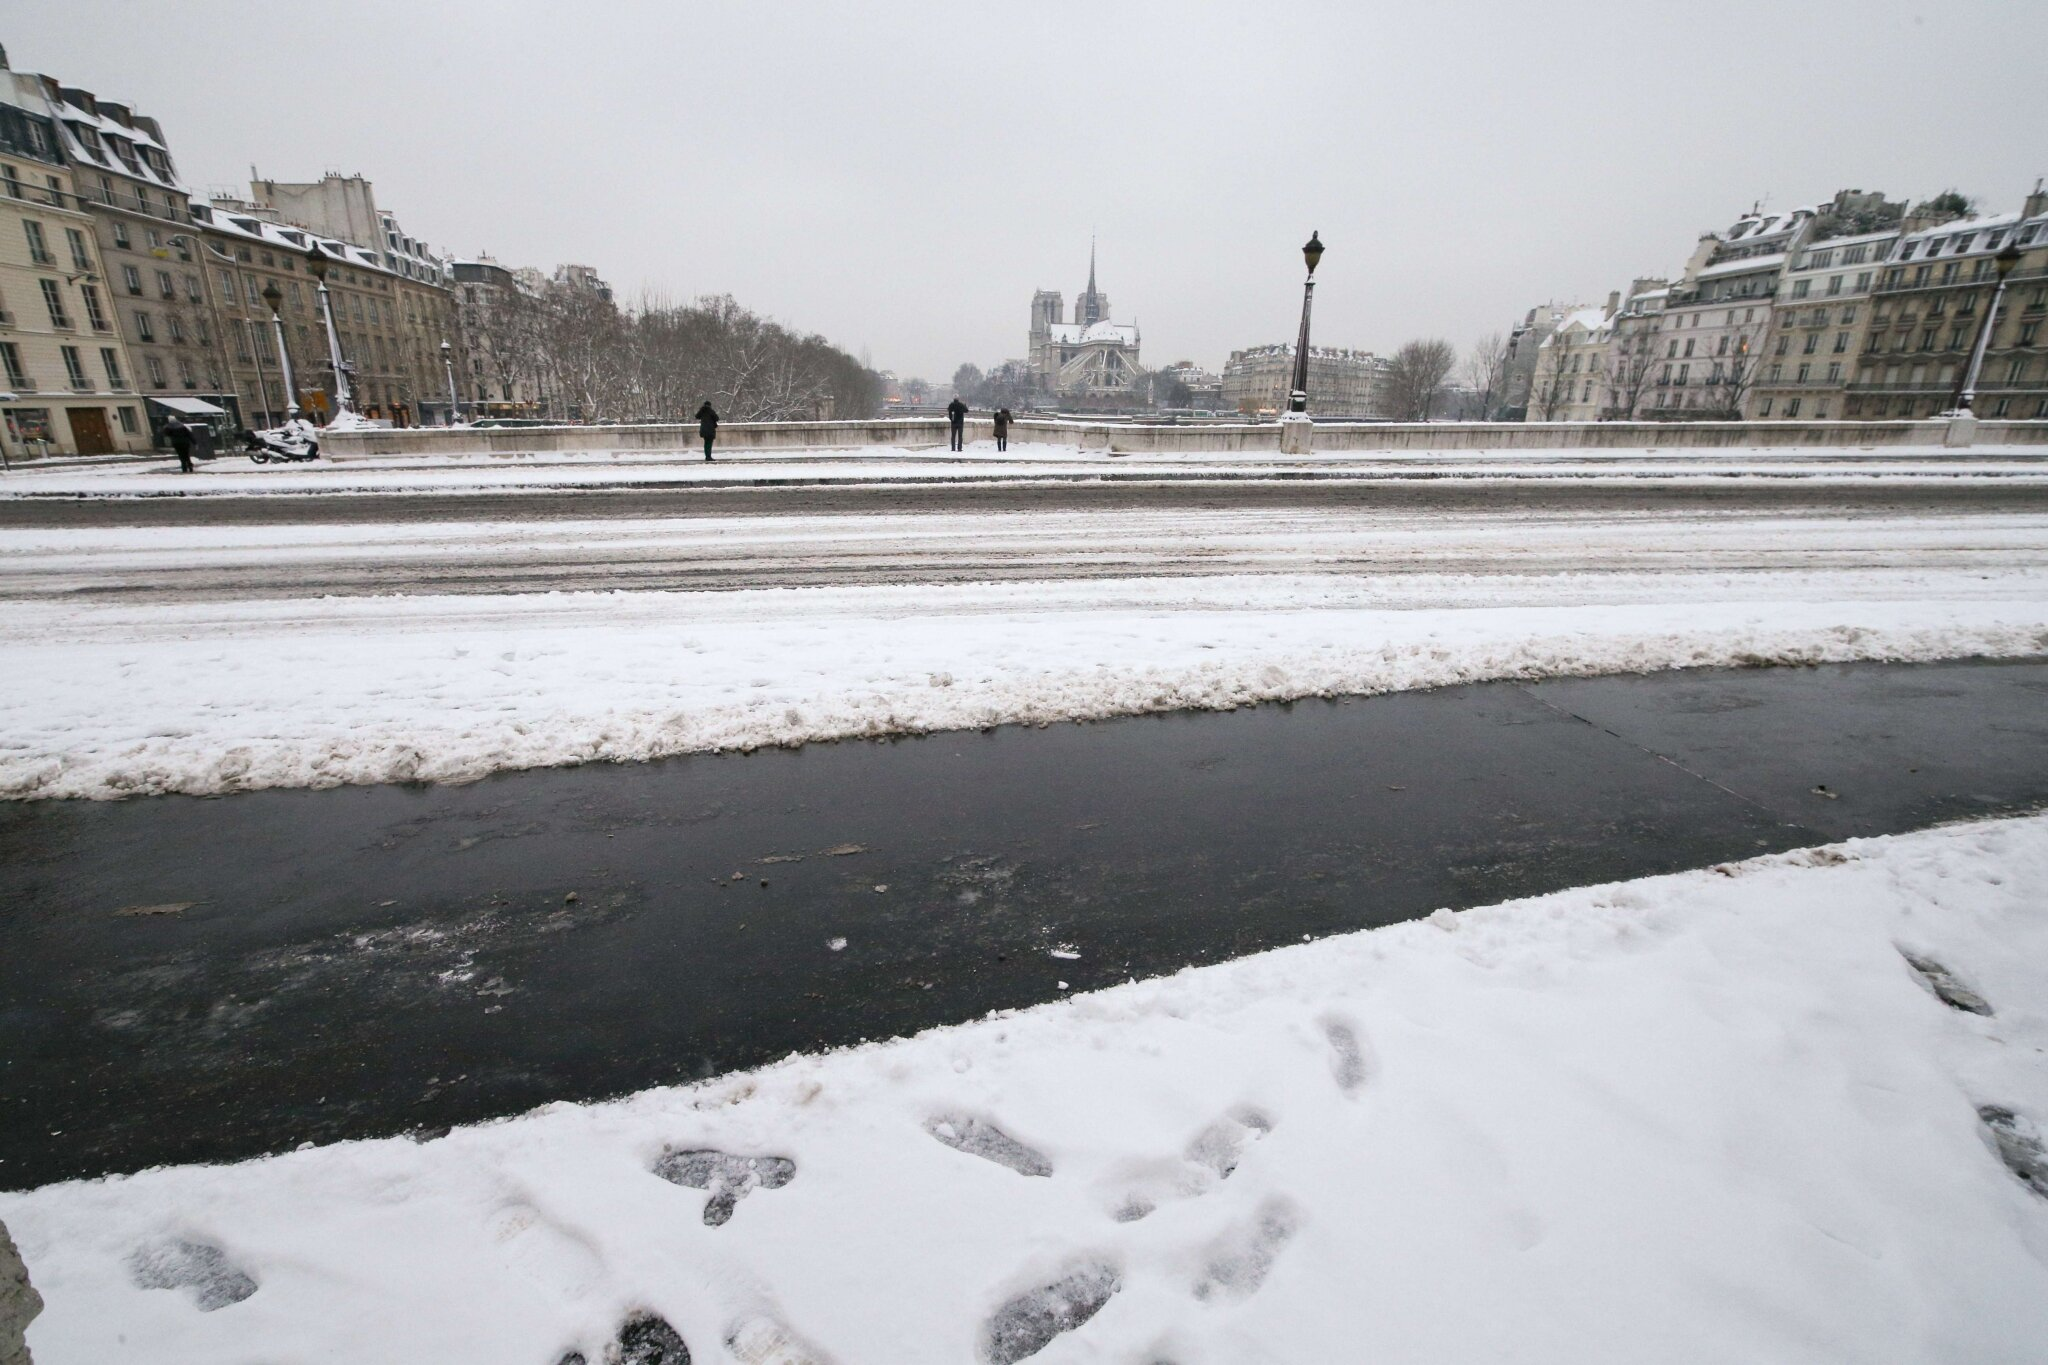 Paris sous la neige. © Photo Michel Stoupak. Sam 19.01.2013, 09:41.